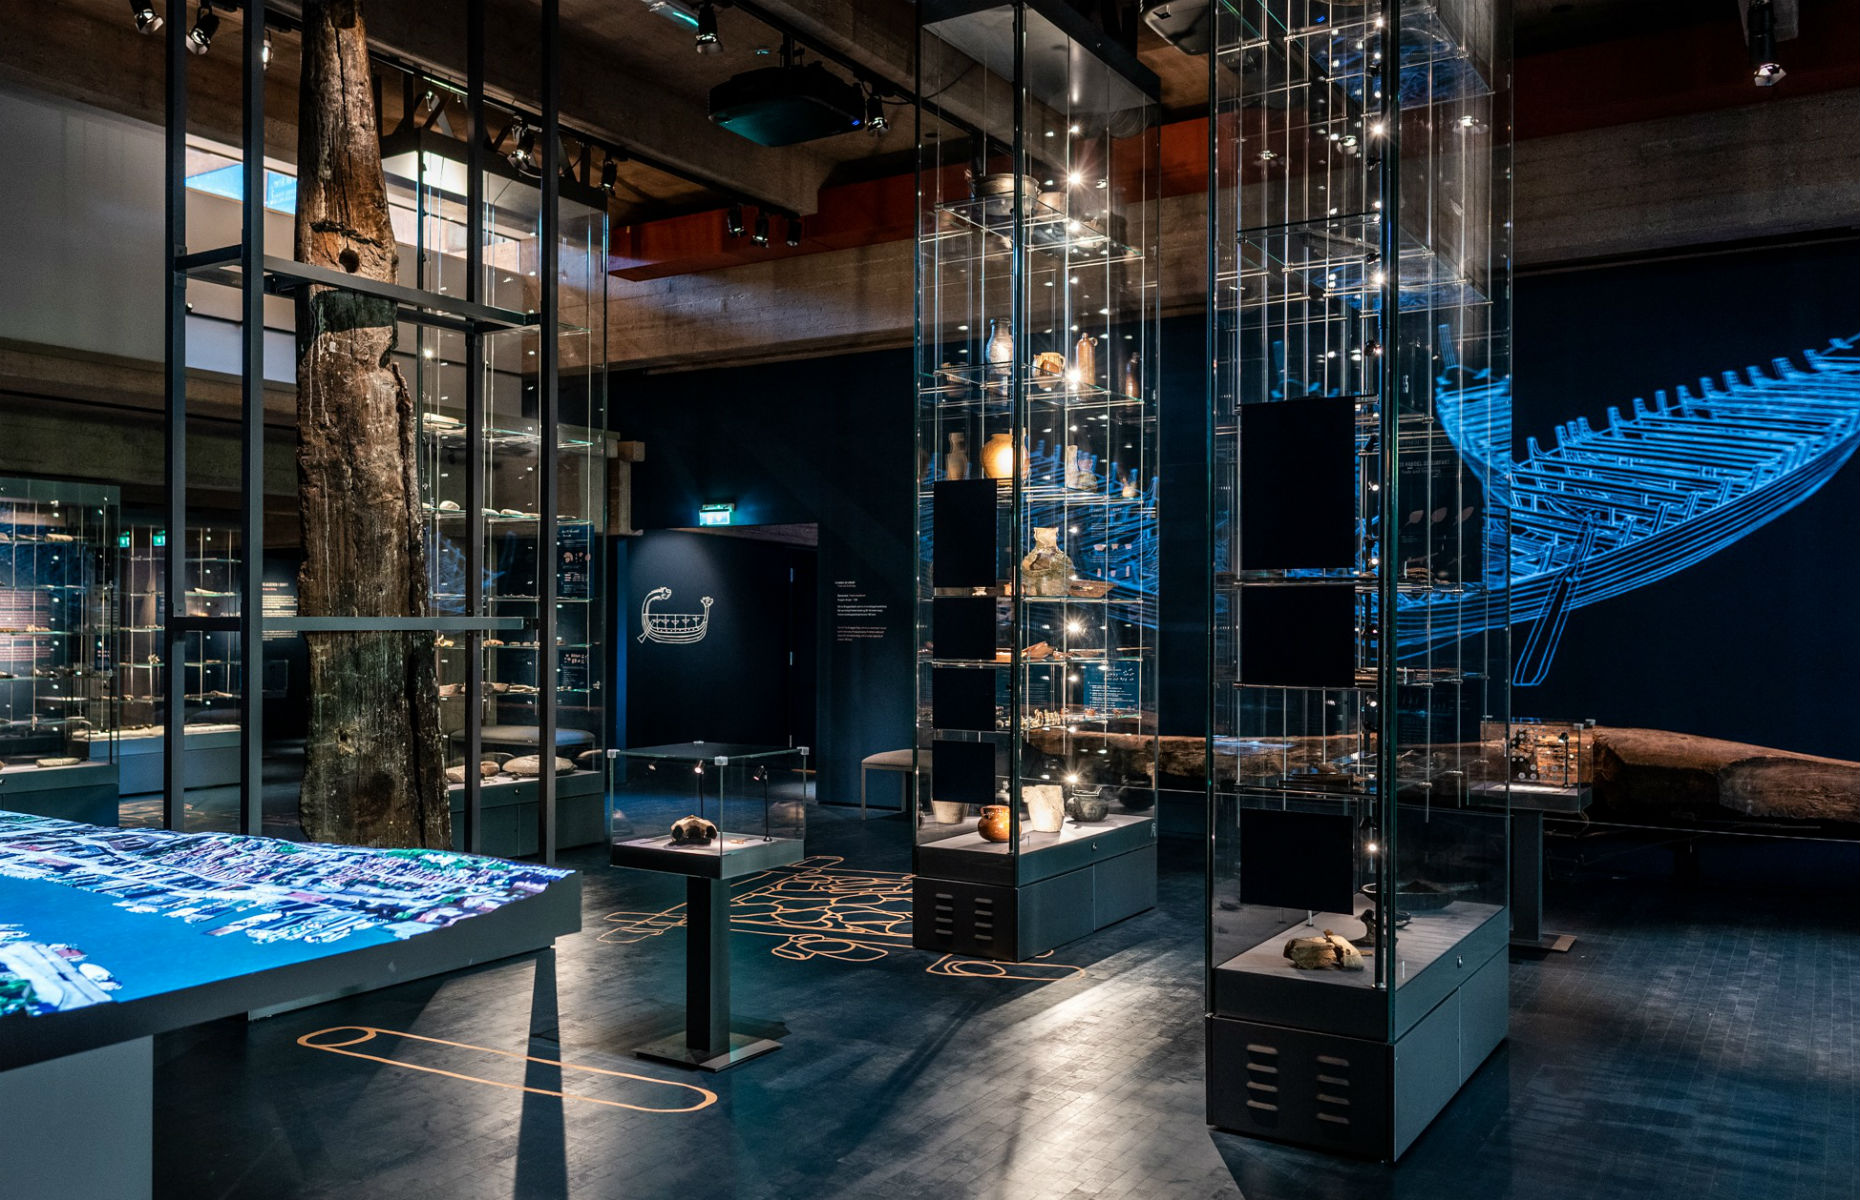 Exhibition in Bryggens museum complex (Image: Bymuseet i Bergen/Facebook)